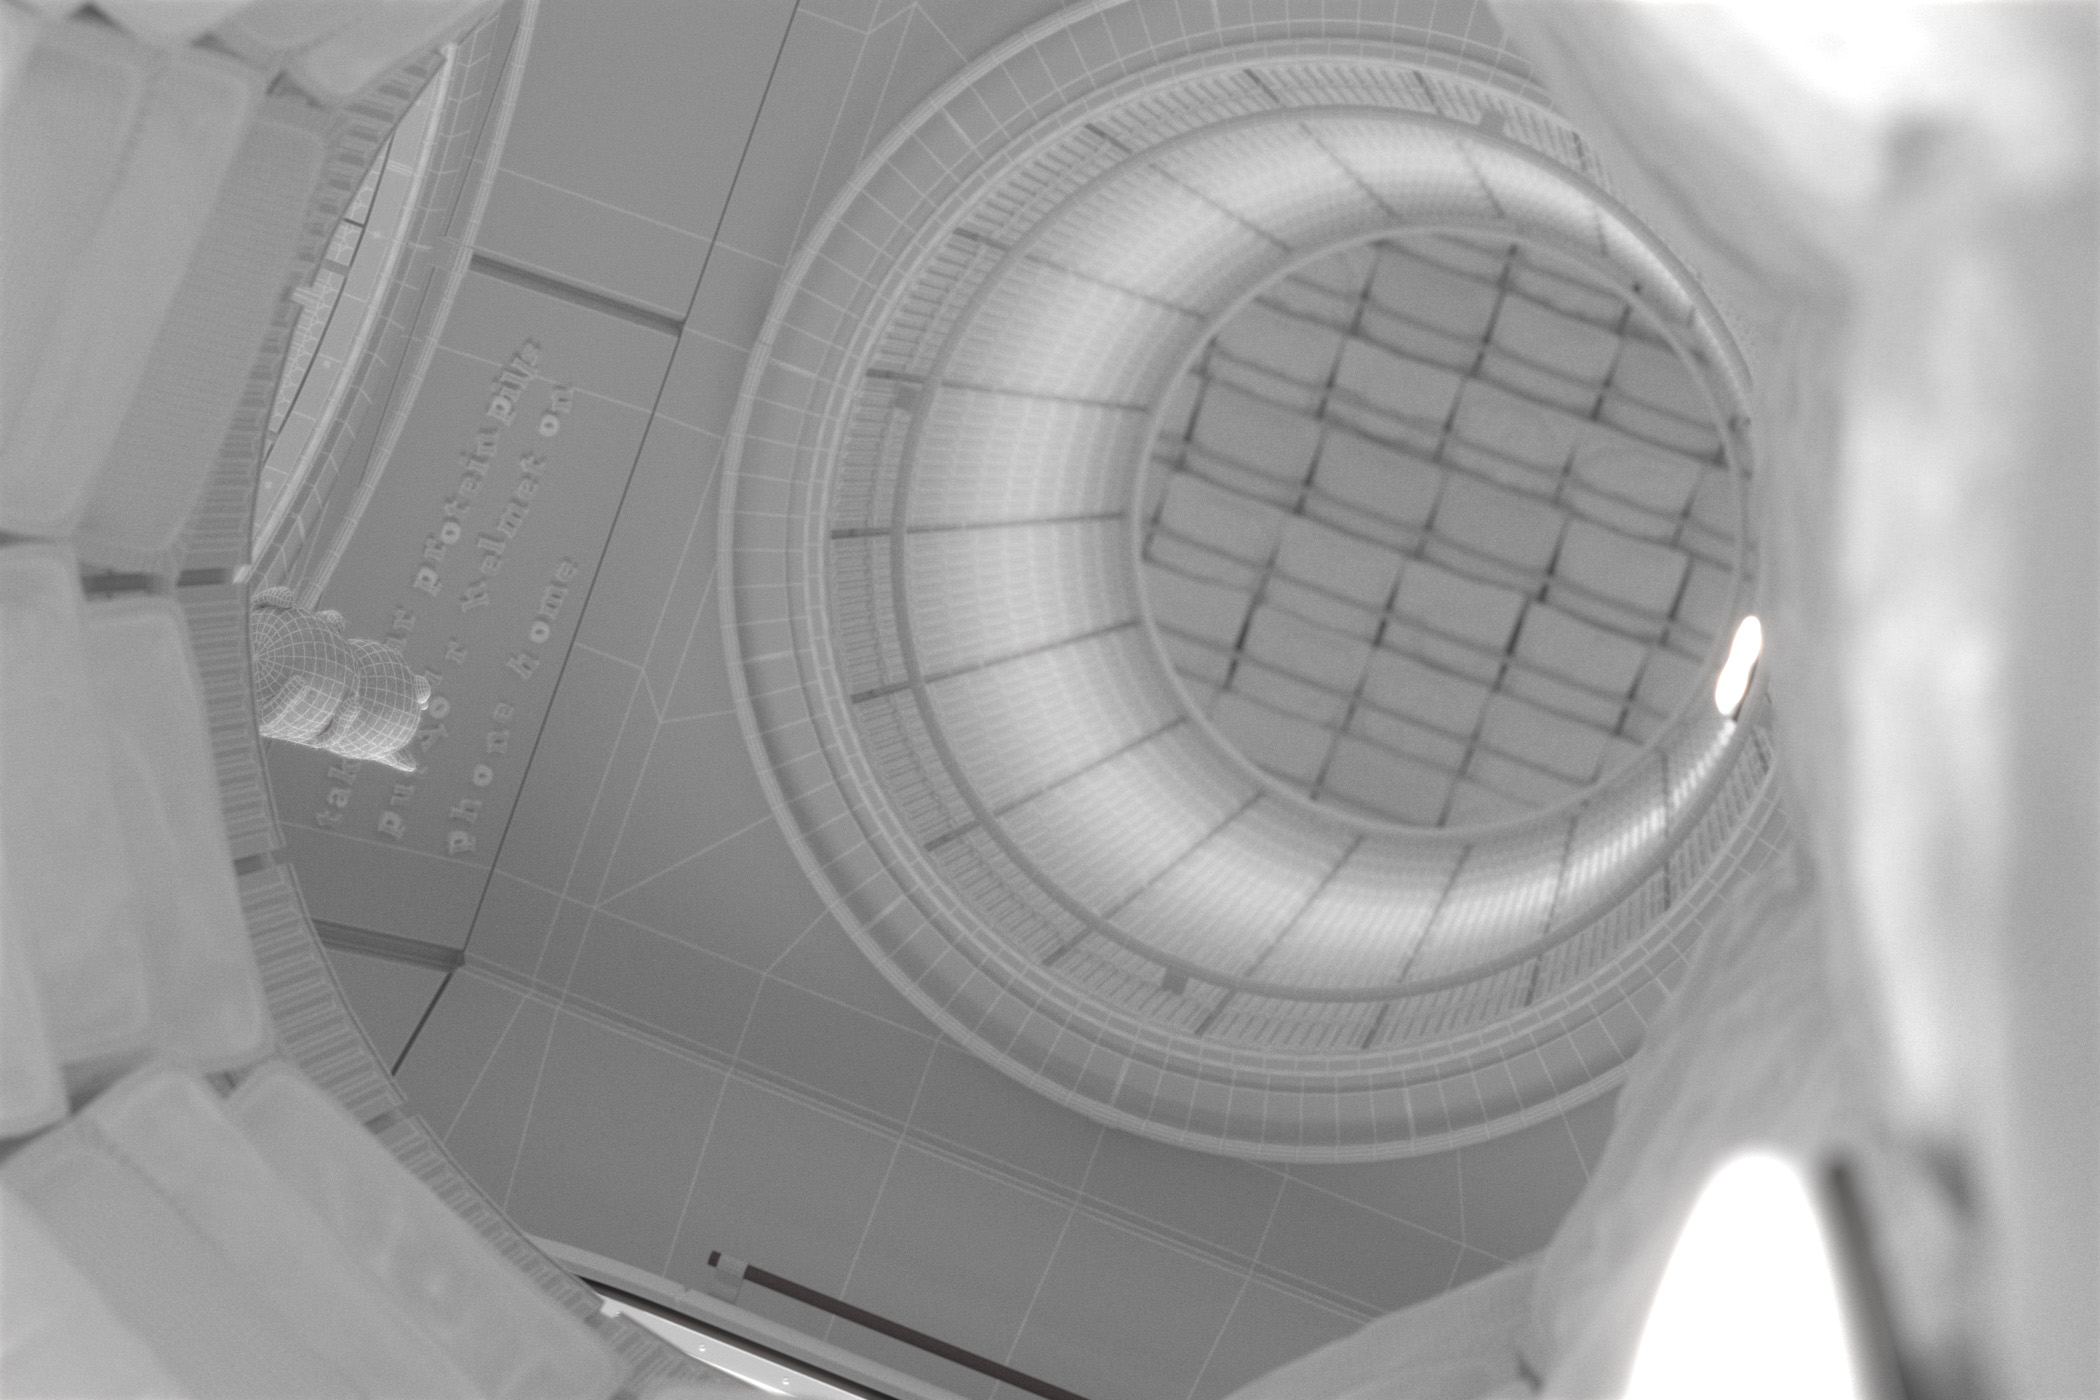 The model of the space station without textures